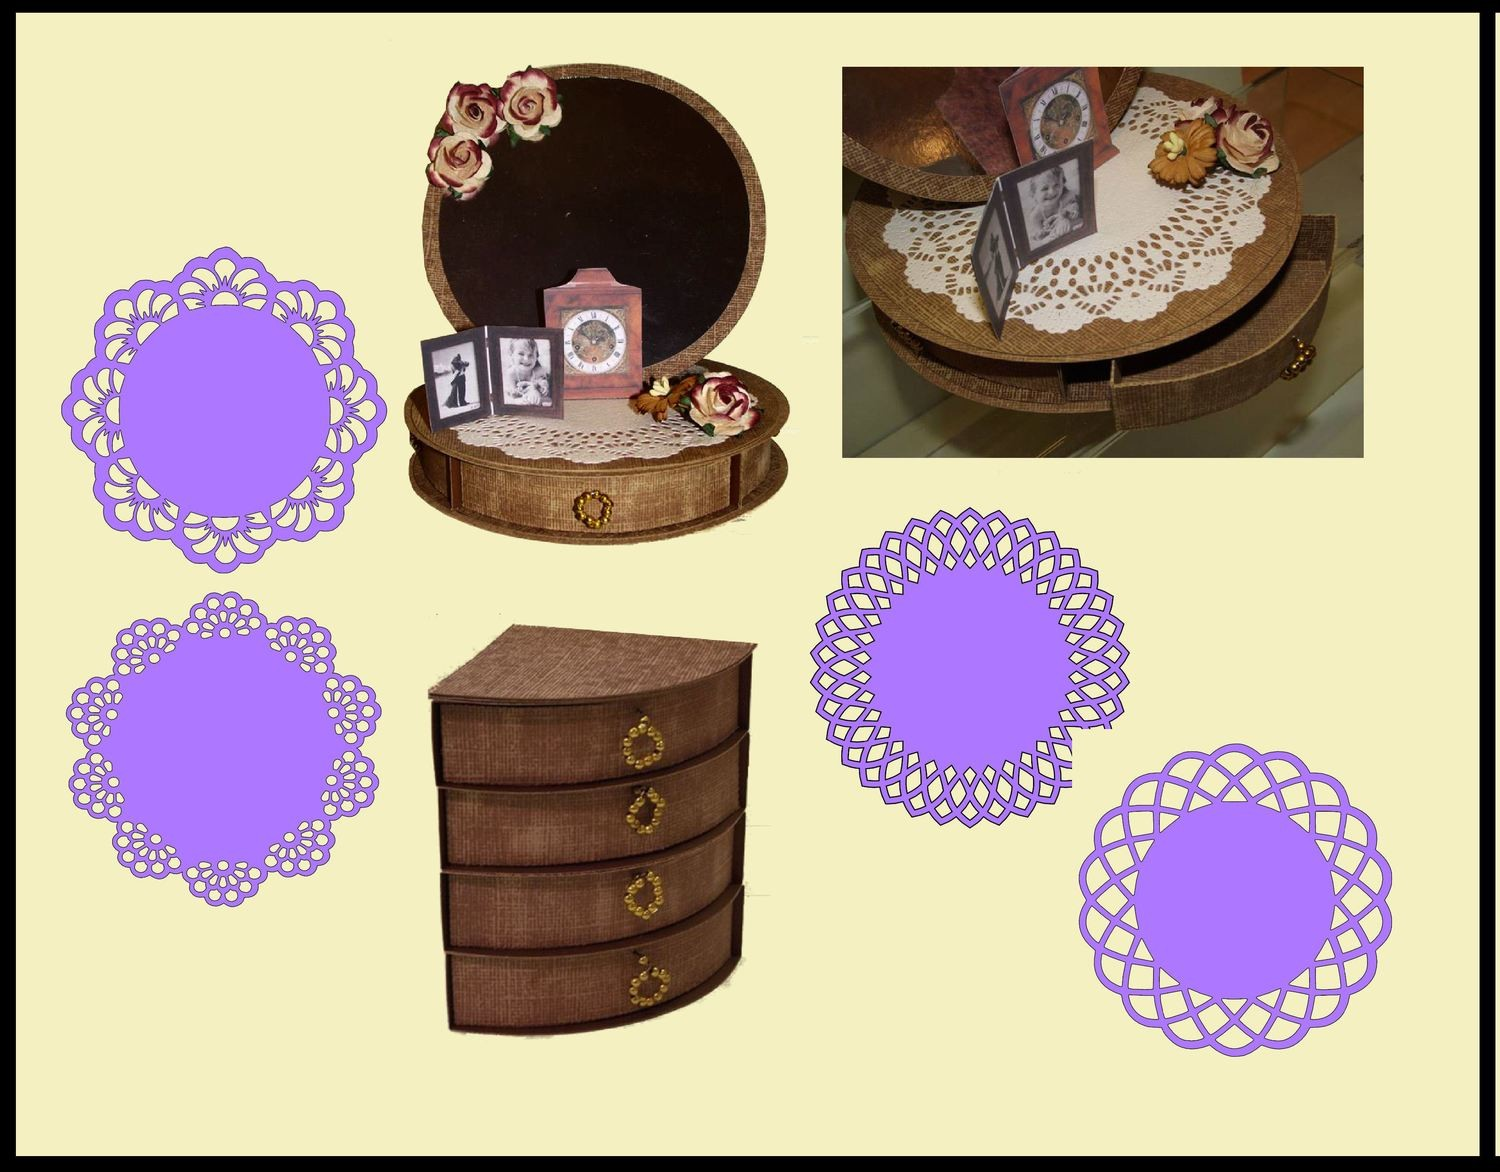 Circular Easel Card with 4 Underdrawers choice No 2 with 4 Doilies